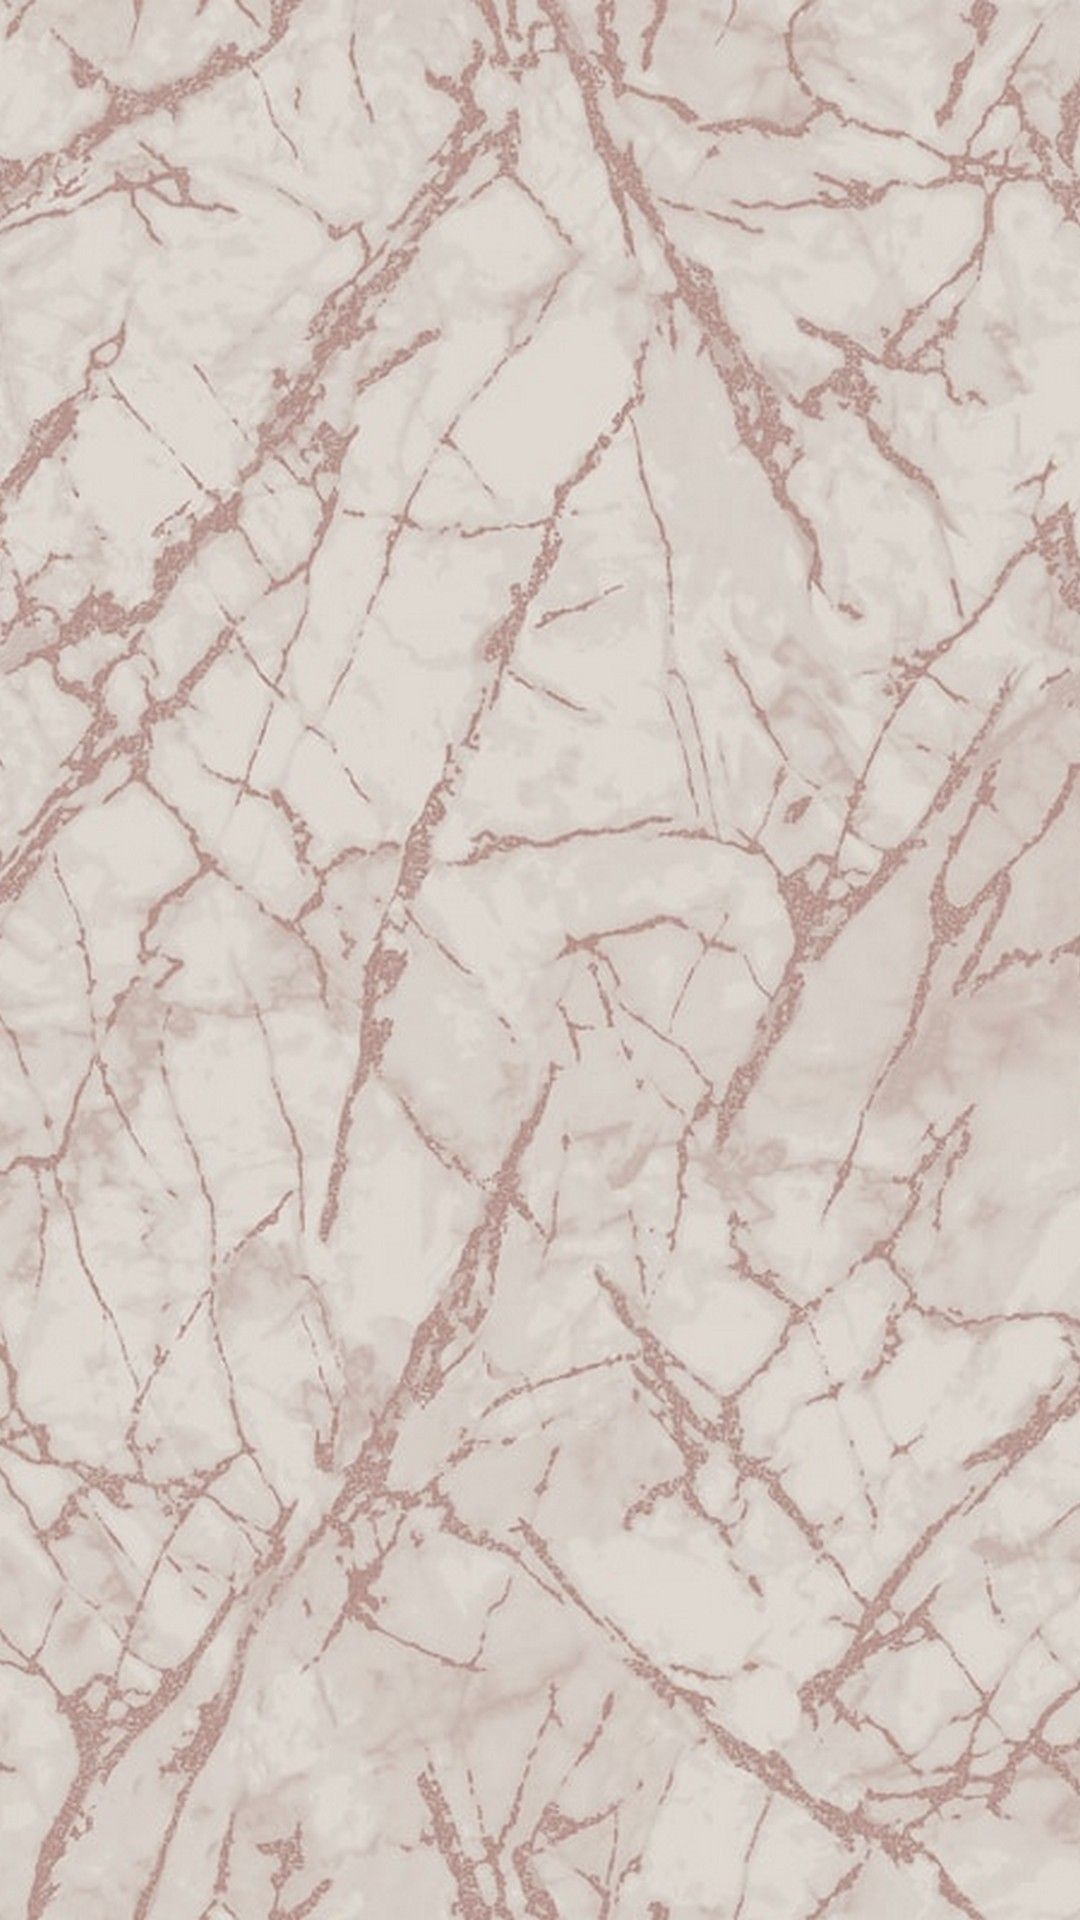 Pink Marble Desktop Wallpapers Top Free Pink Marble